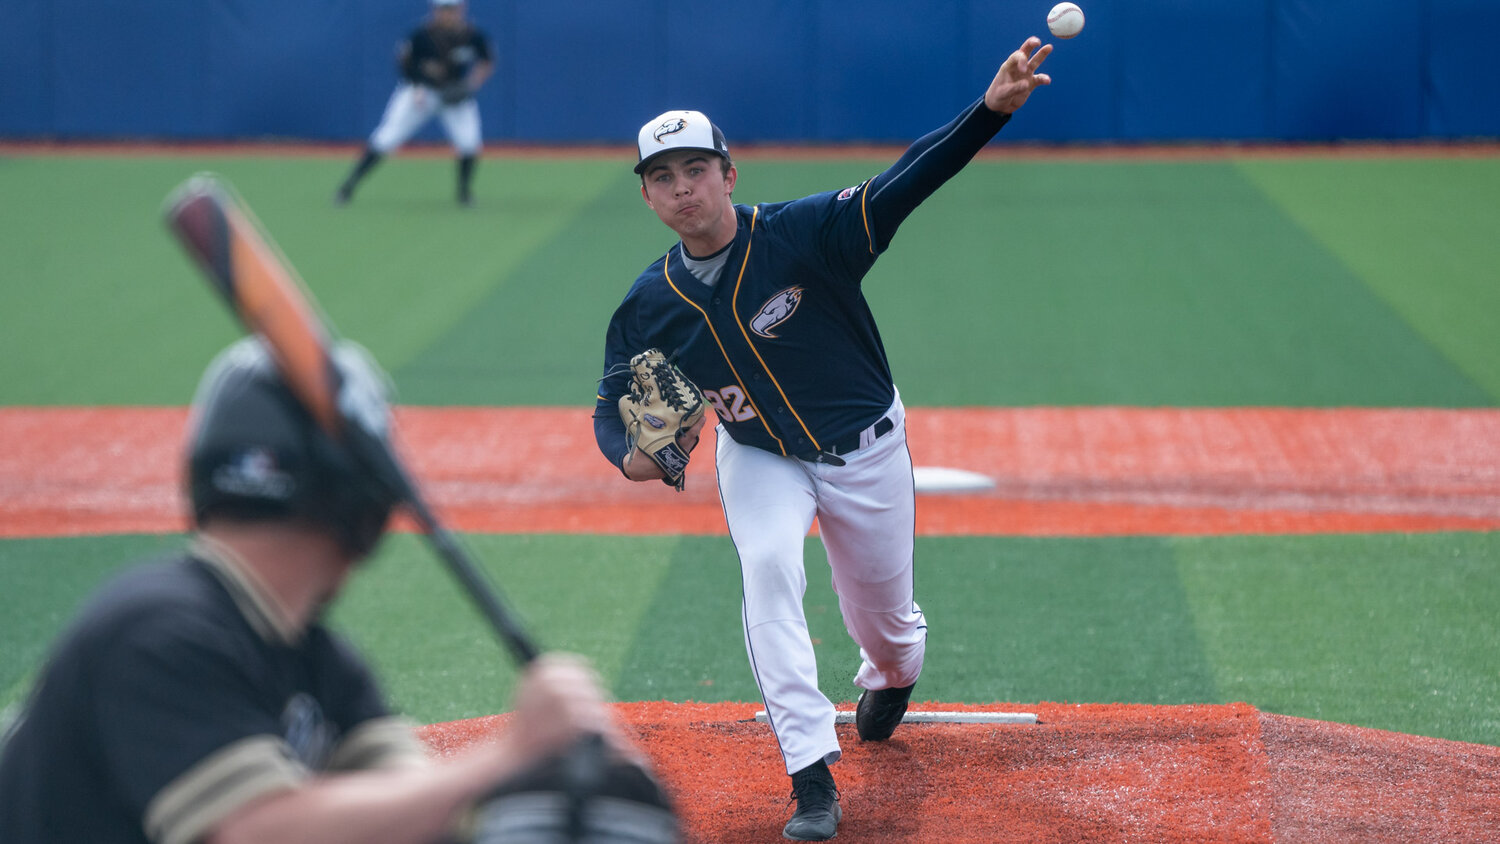 VANCOUVER,BC:APRIL 21, 2019 -- UBC Thunderbirds v Oregon Technical Institute Hustlin' Owls during NAIA baseball action at UBC in Vancouver, BC, April, 21, 2019. (Rich Lam/UBC Athletics Photo) ***MANDATORY CREDIT***